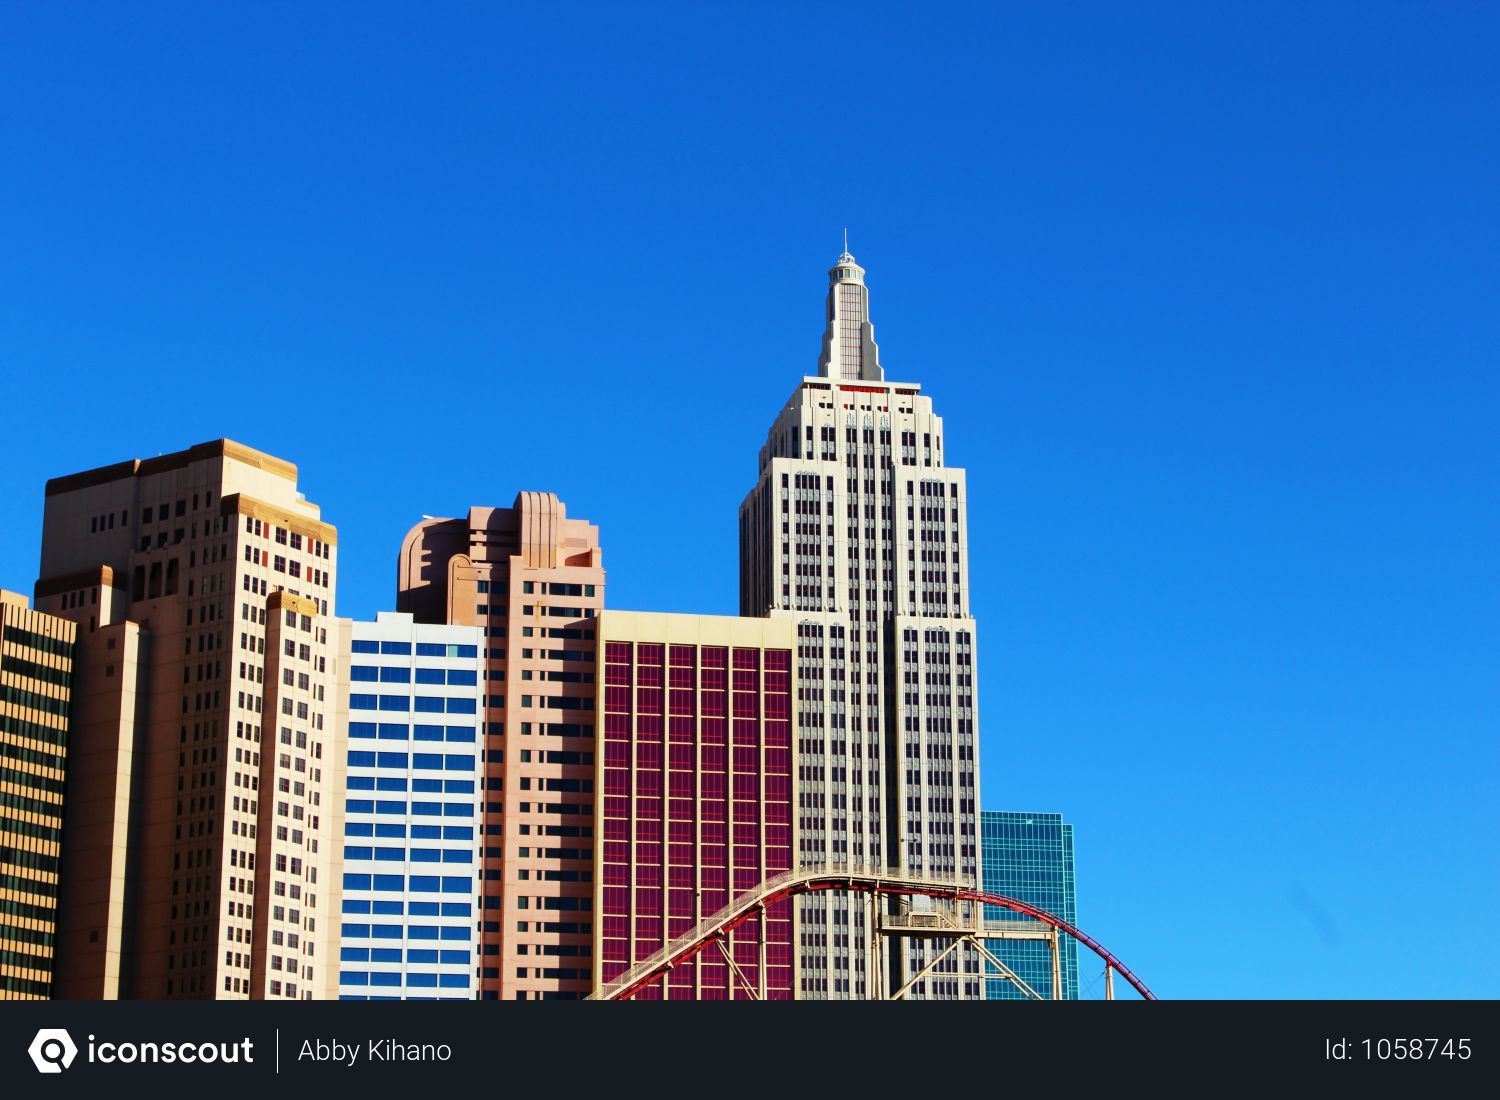 Free White Red And Brown High Rise Buildings City View Photo Download In Png Jpg Format High Rise Building City View Building